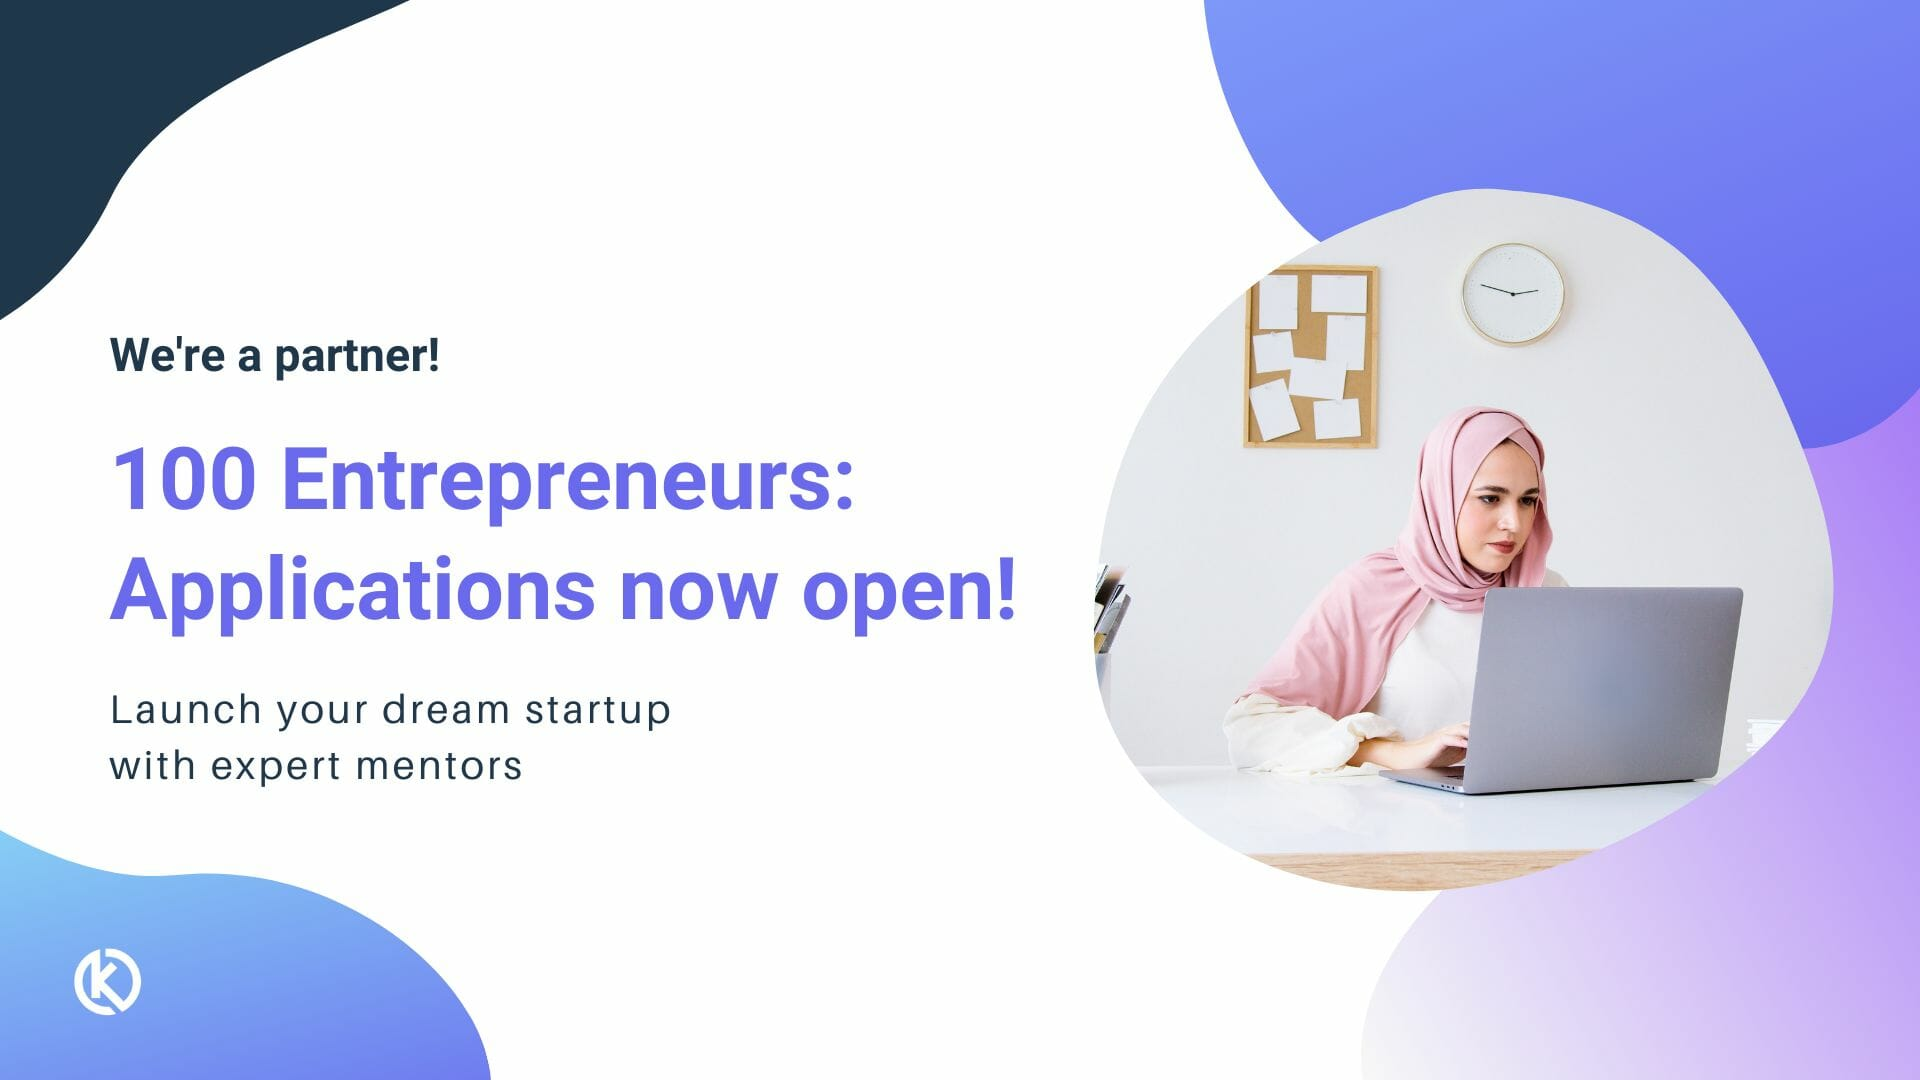 Knowledge Officer's 100 Entrepreneurs 6-month fully-funded fellowship in HealthTech and EdTech